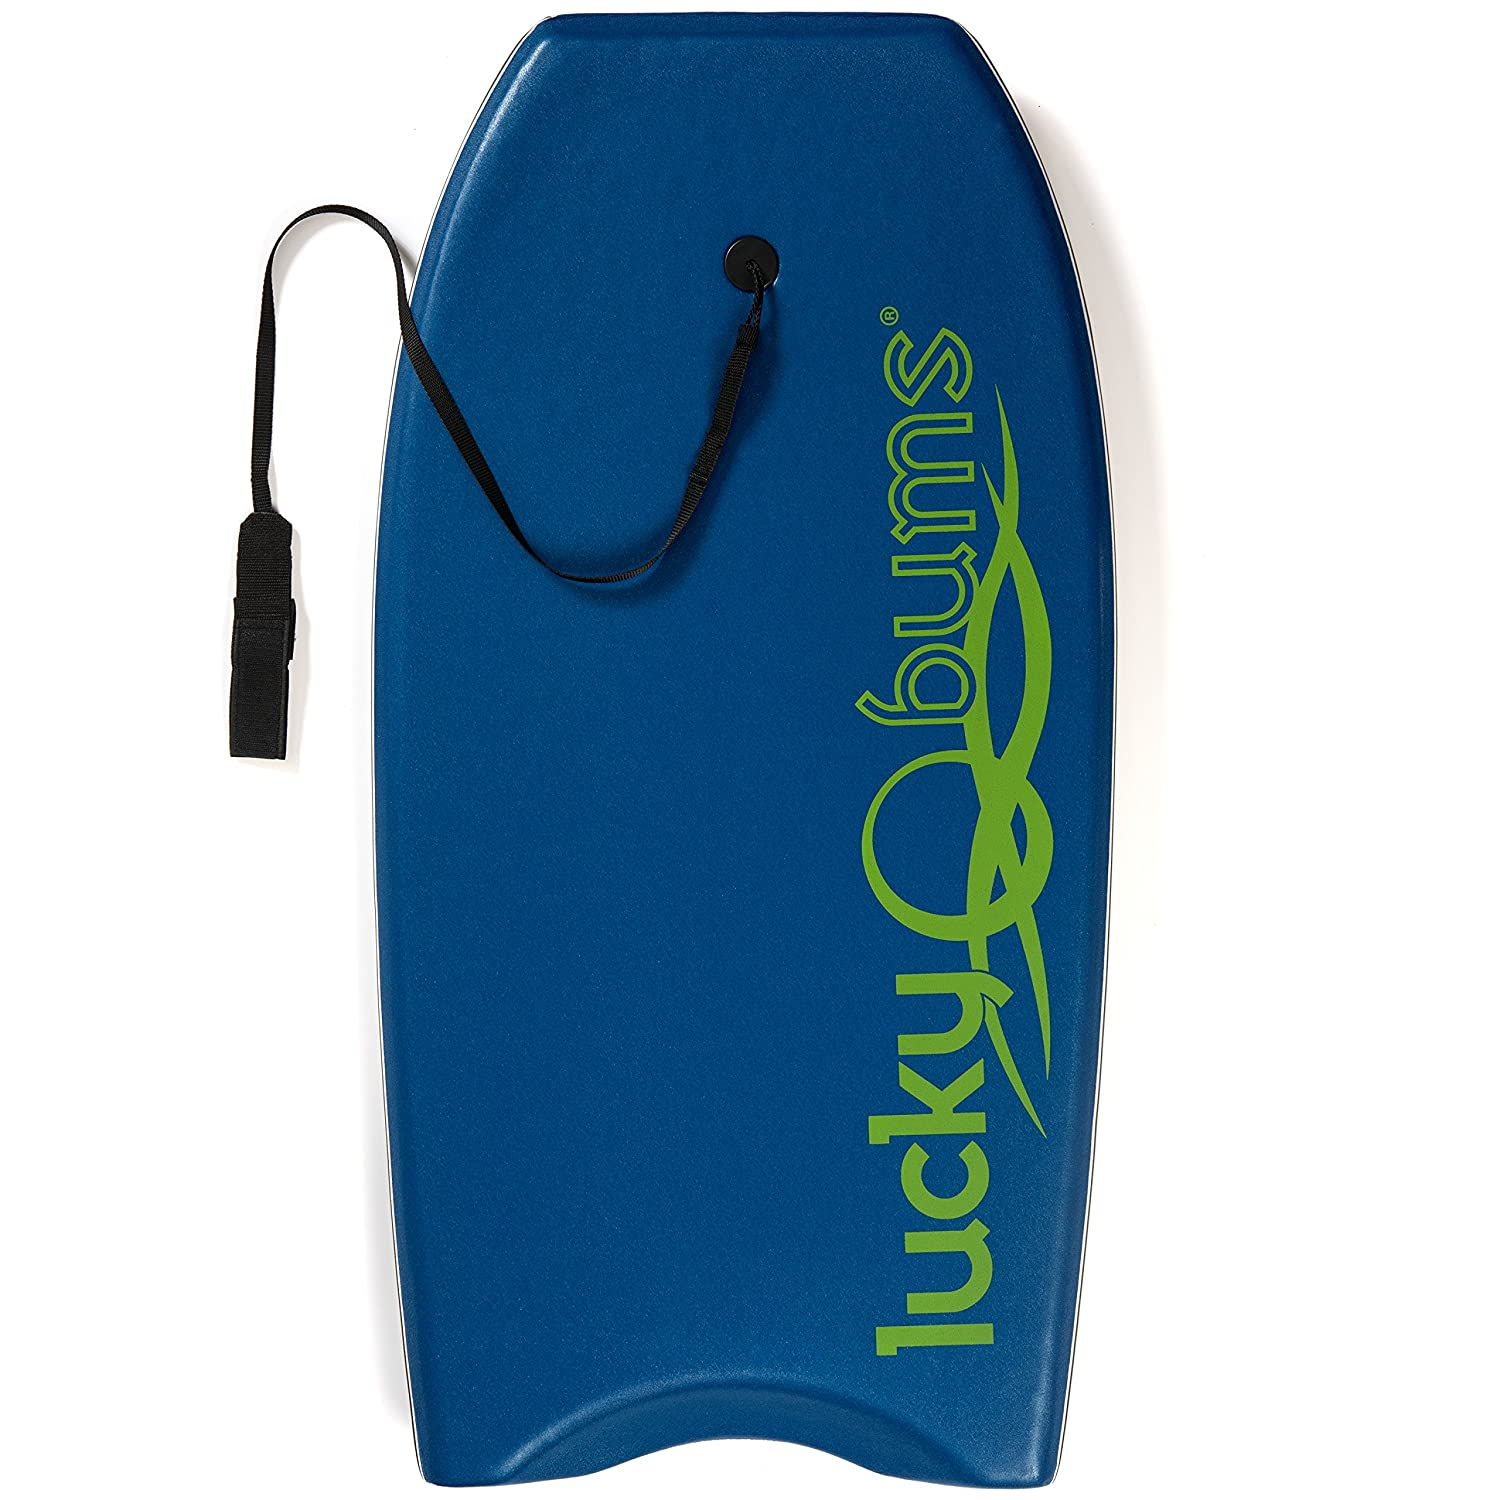 Lucky Bums Bodyboard – Most Durable Bodyboard